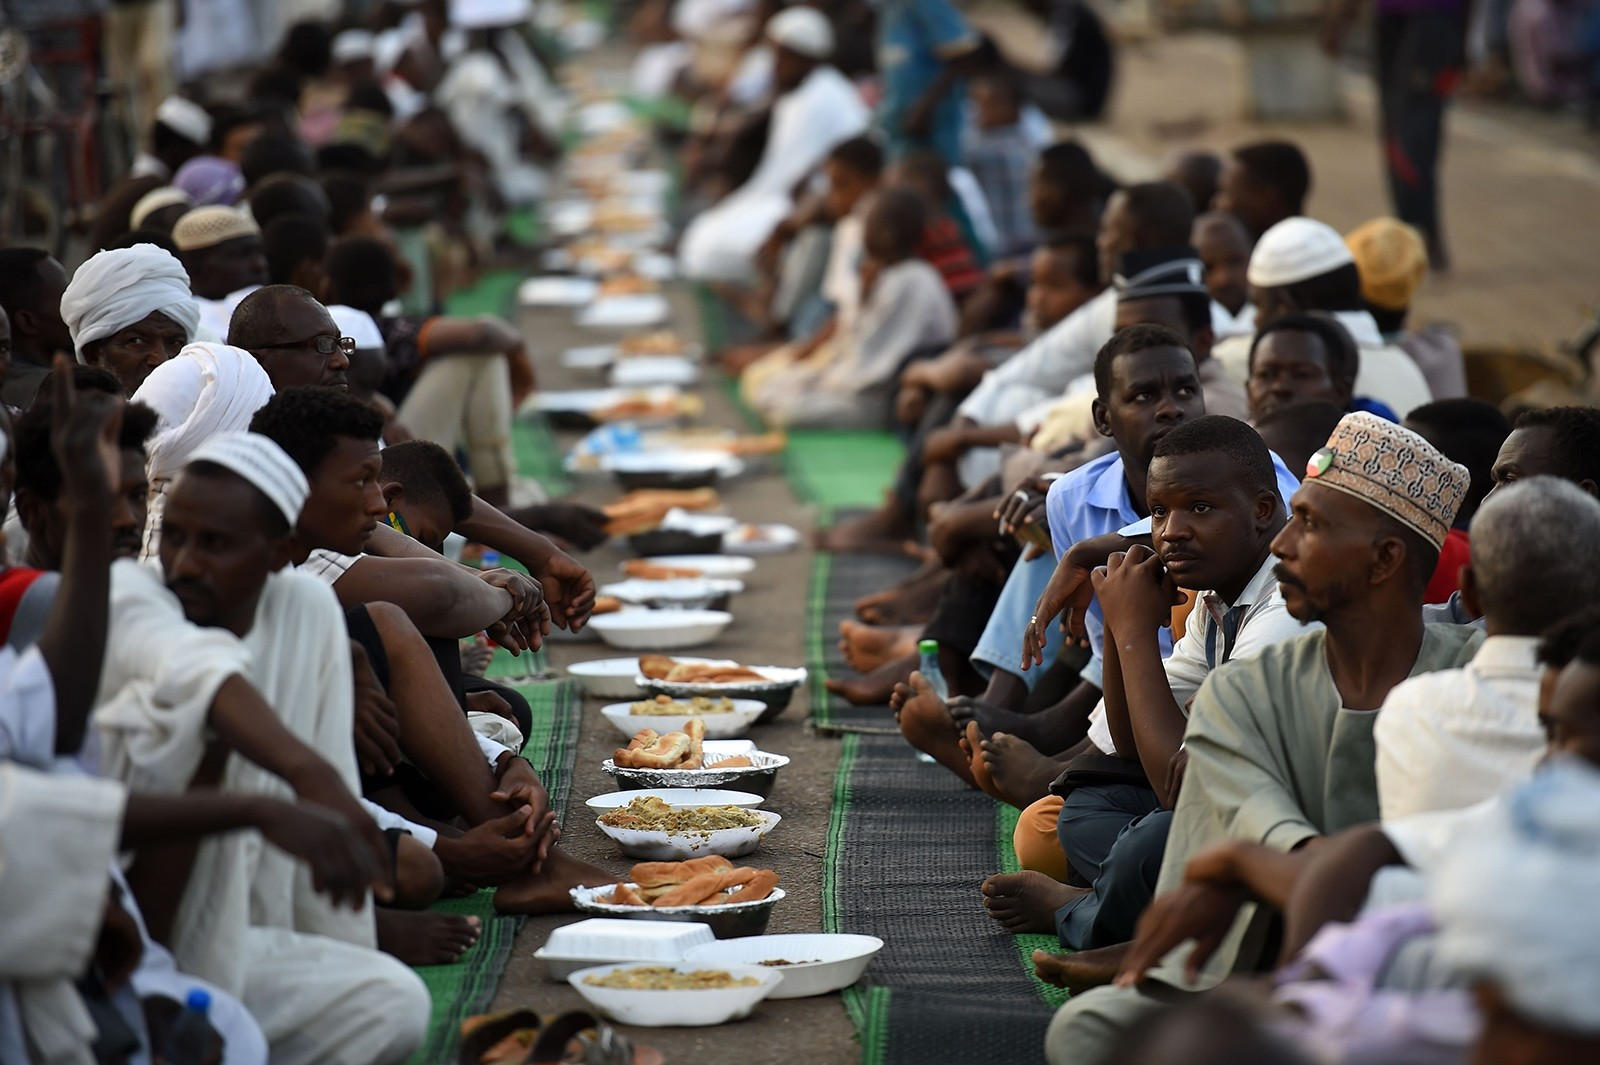 Iftar, a festive evening meal during holy month of Ramadan